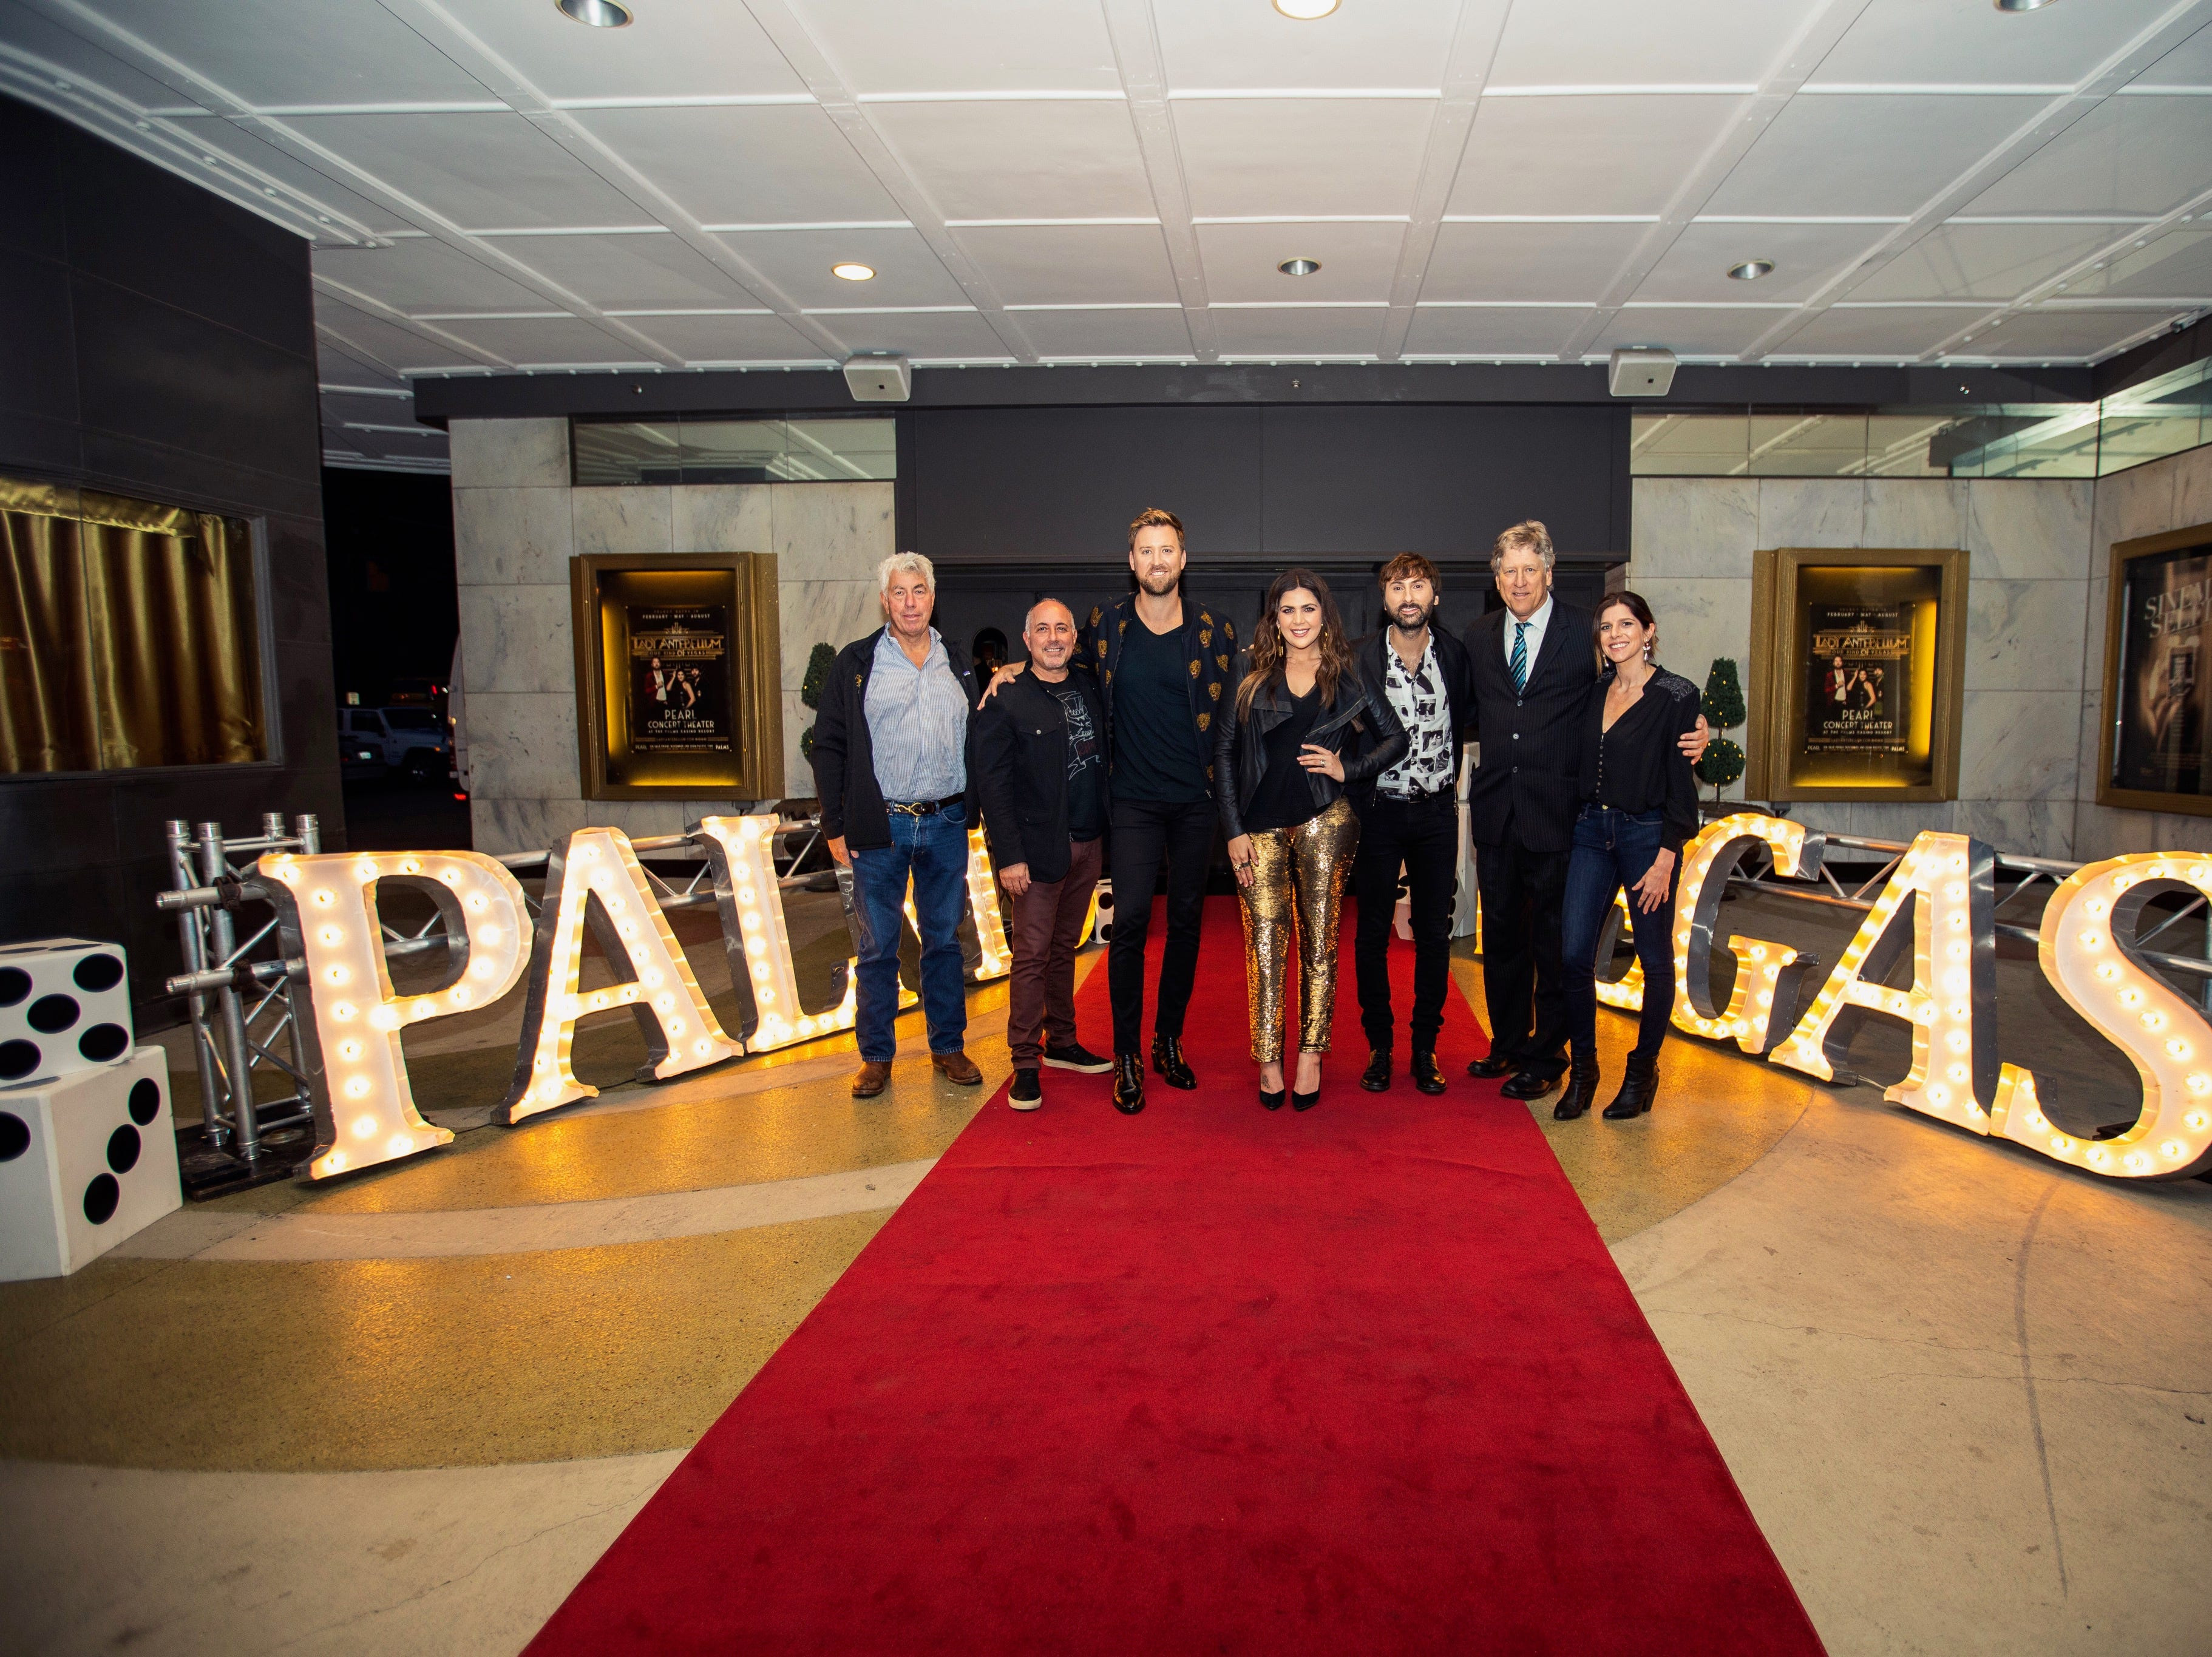 Country music trio Lady Antebellum announced their first Las Vegas residency. It begins in February 2019 at   The Palms Casino Resort.